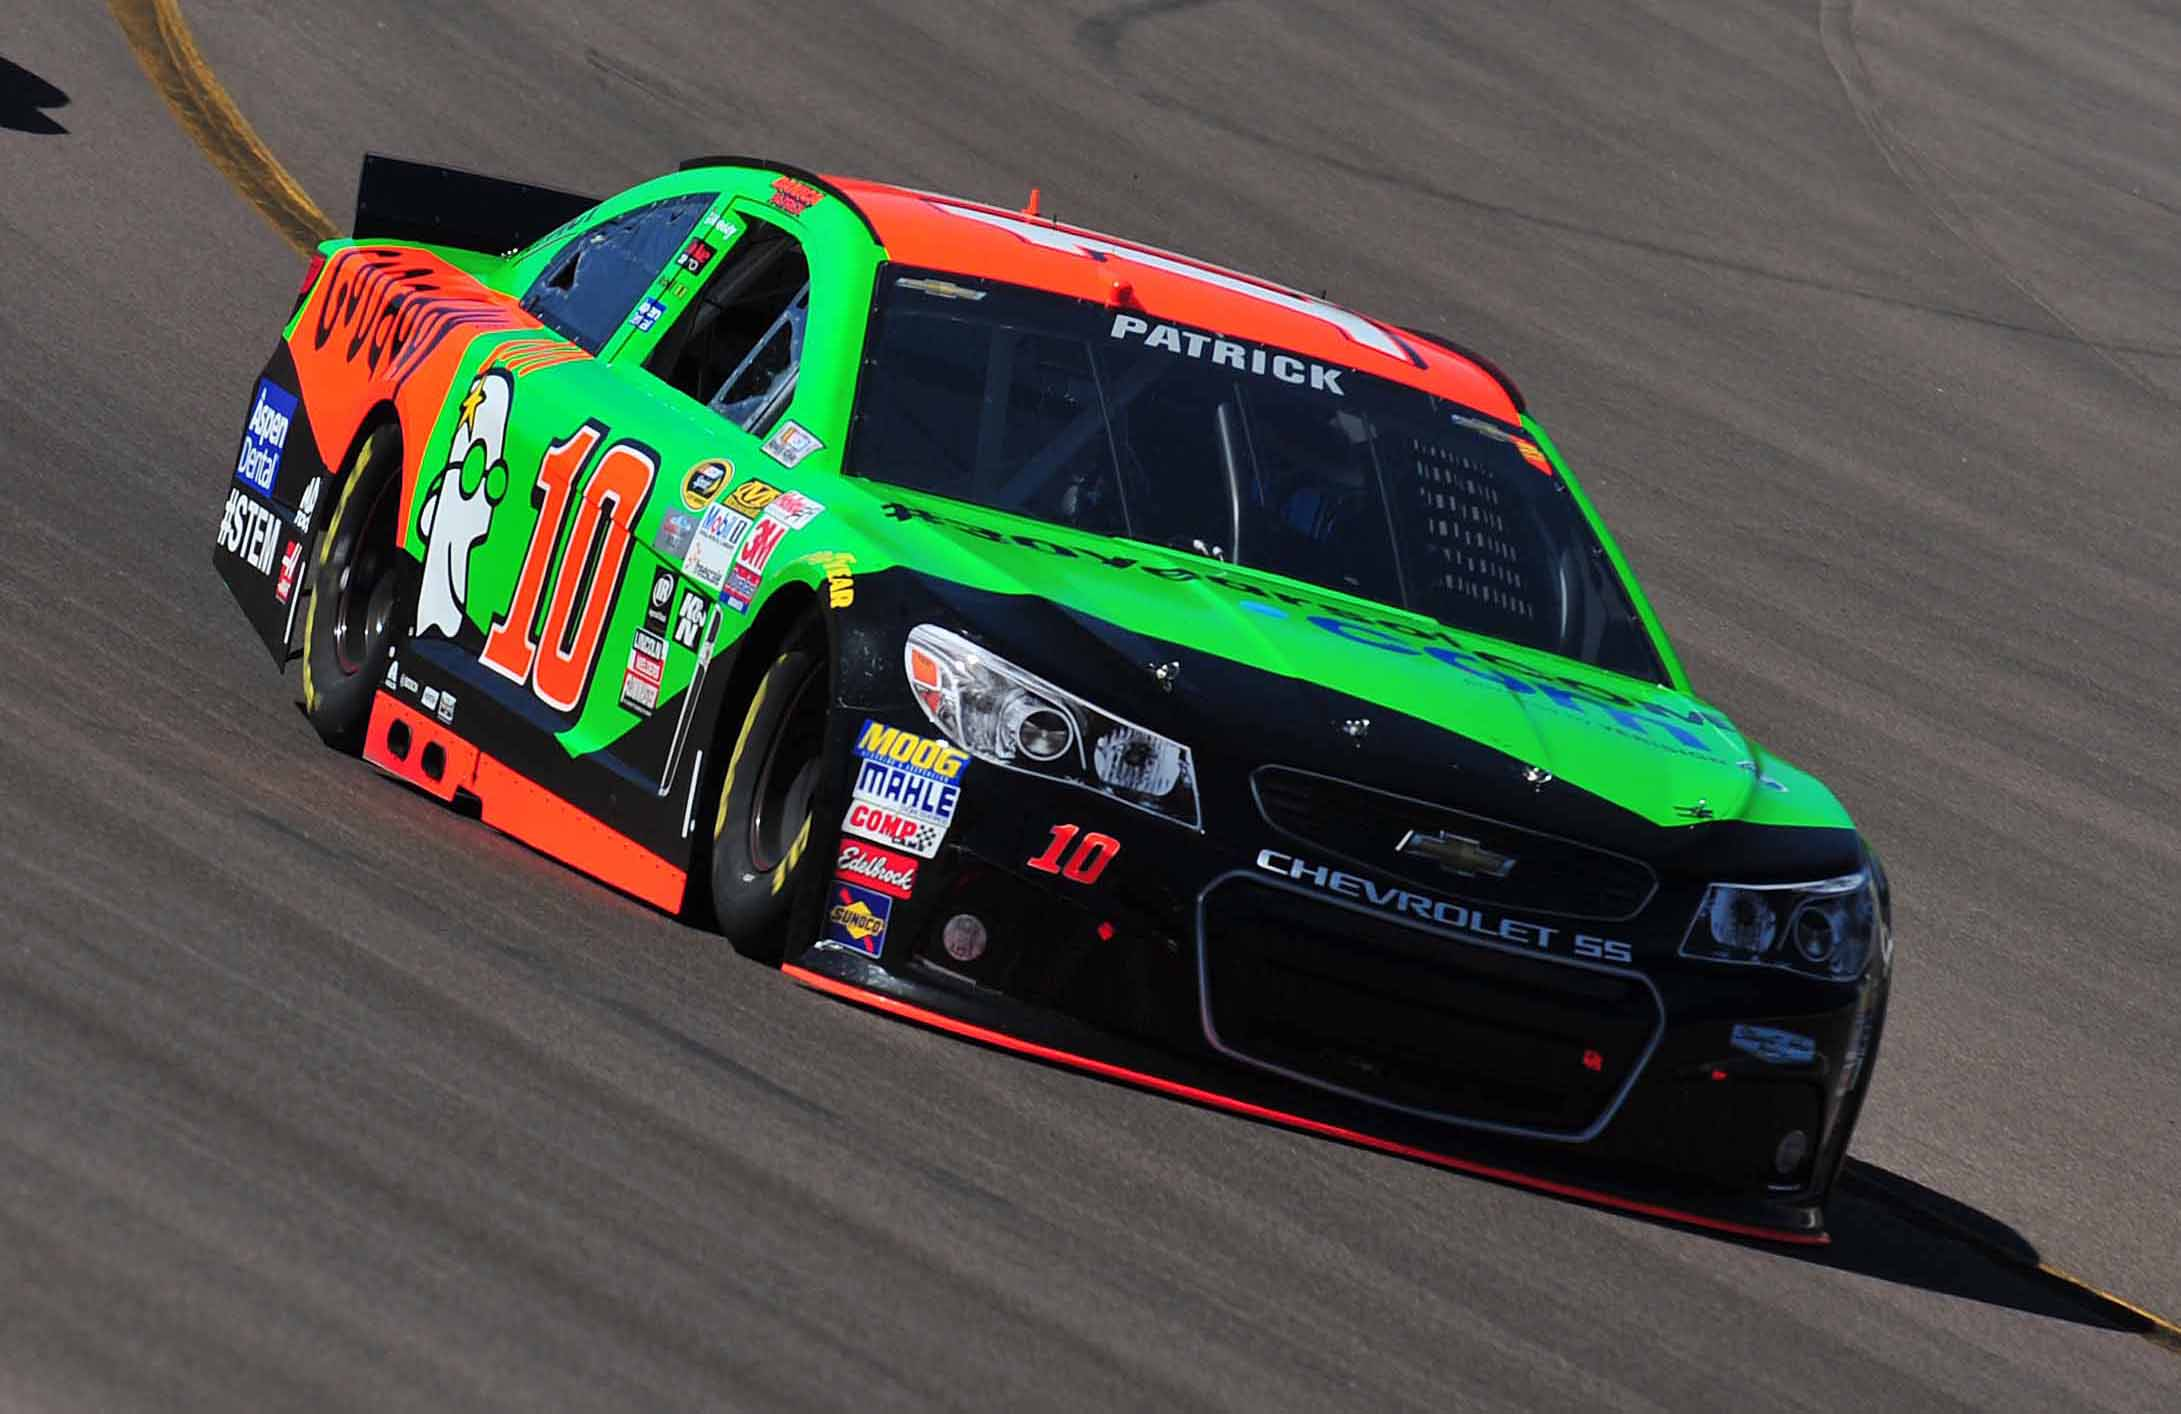 Danica Patrick during the CampingWorld.com 500 at Phoenix International Raceway. (Photo: Gary A. Vasquez, USA TODAY Sports)